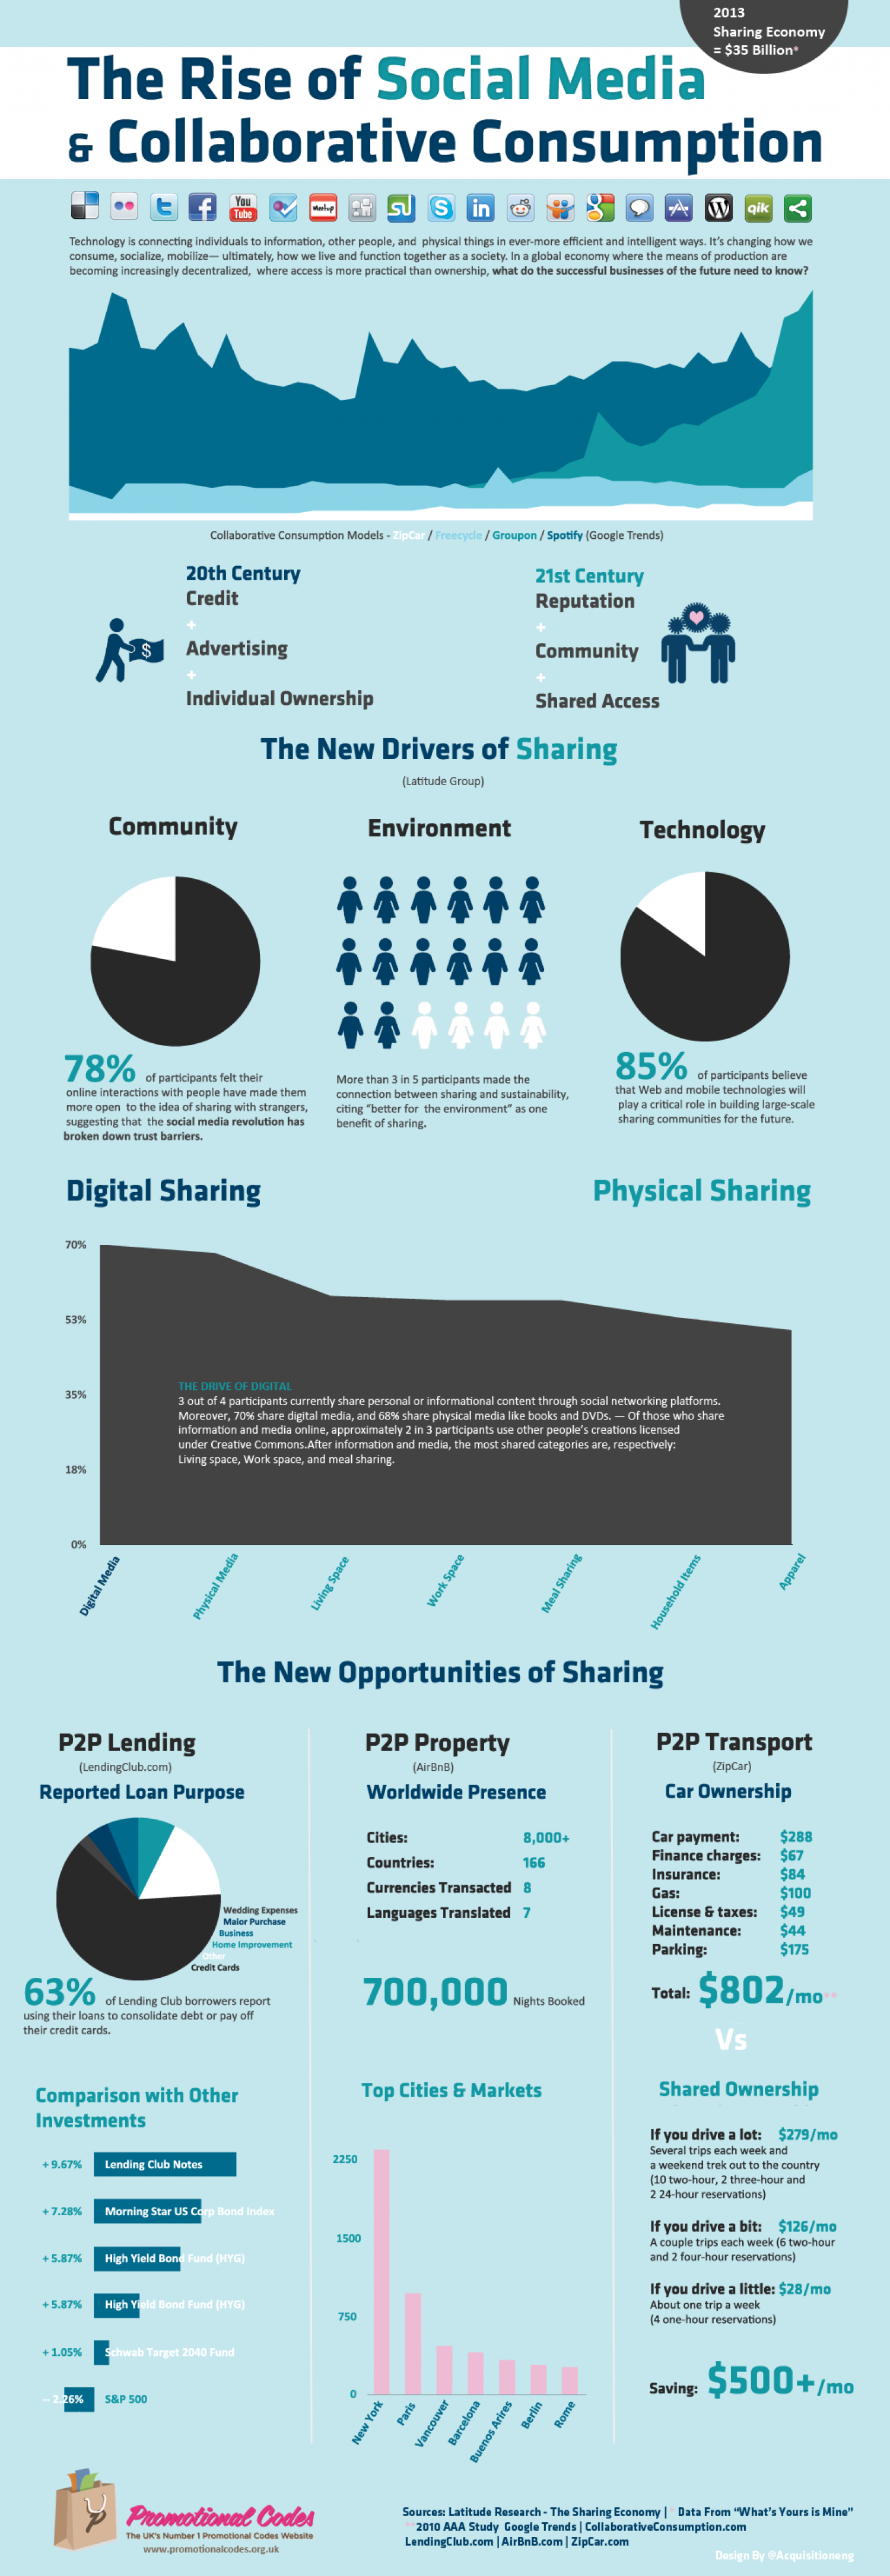 The Rise of Social Media and Collaborative Consumption  Infographic